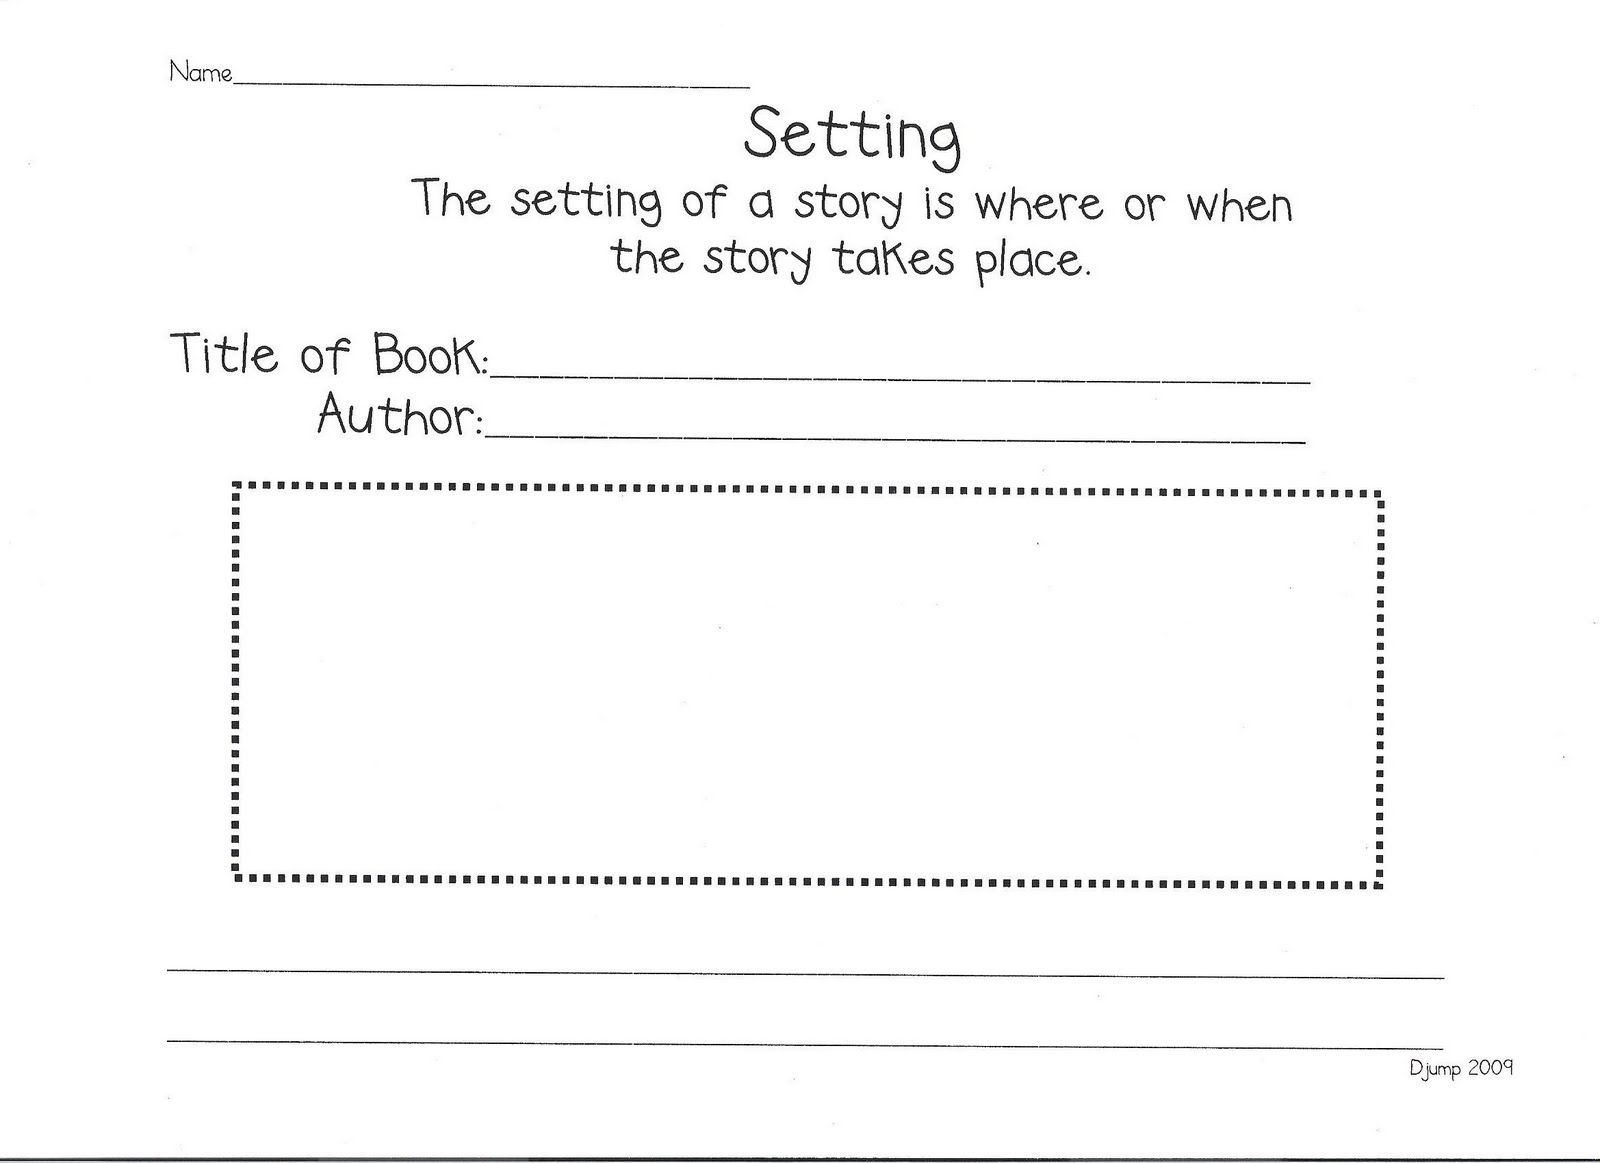 Reading Response Worksheet Focus On Setting